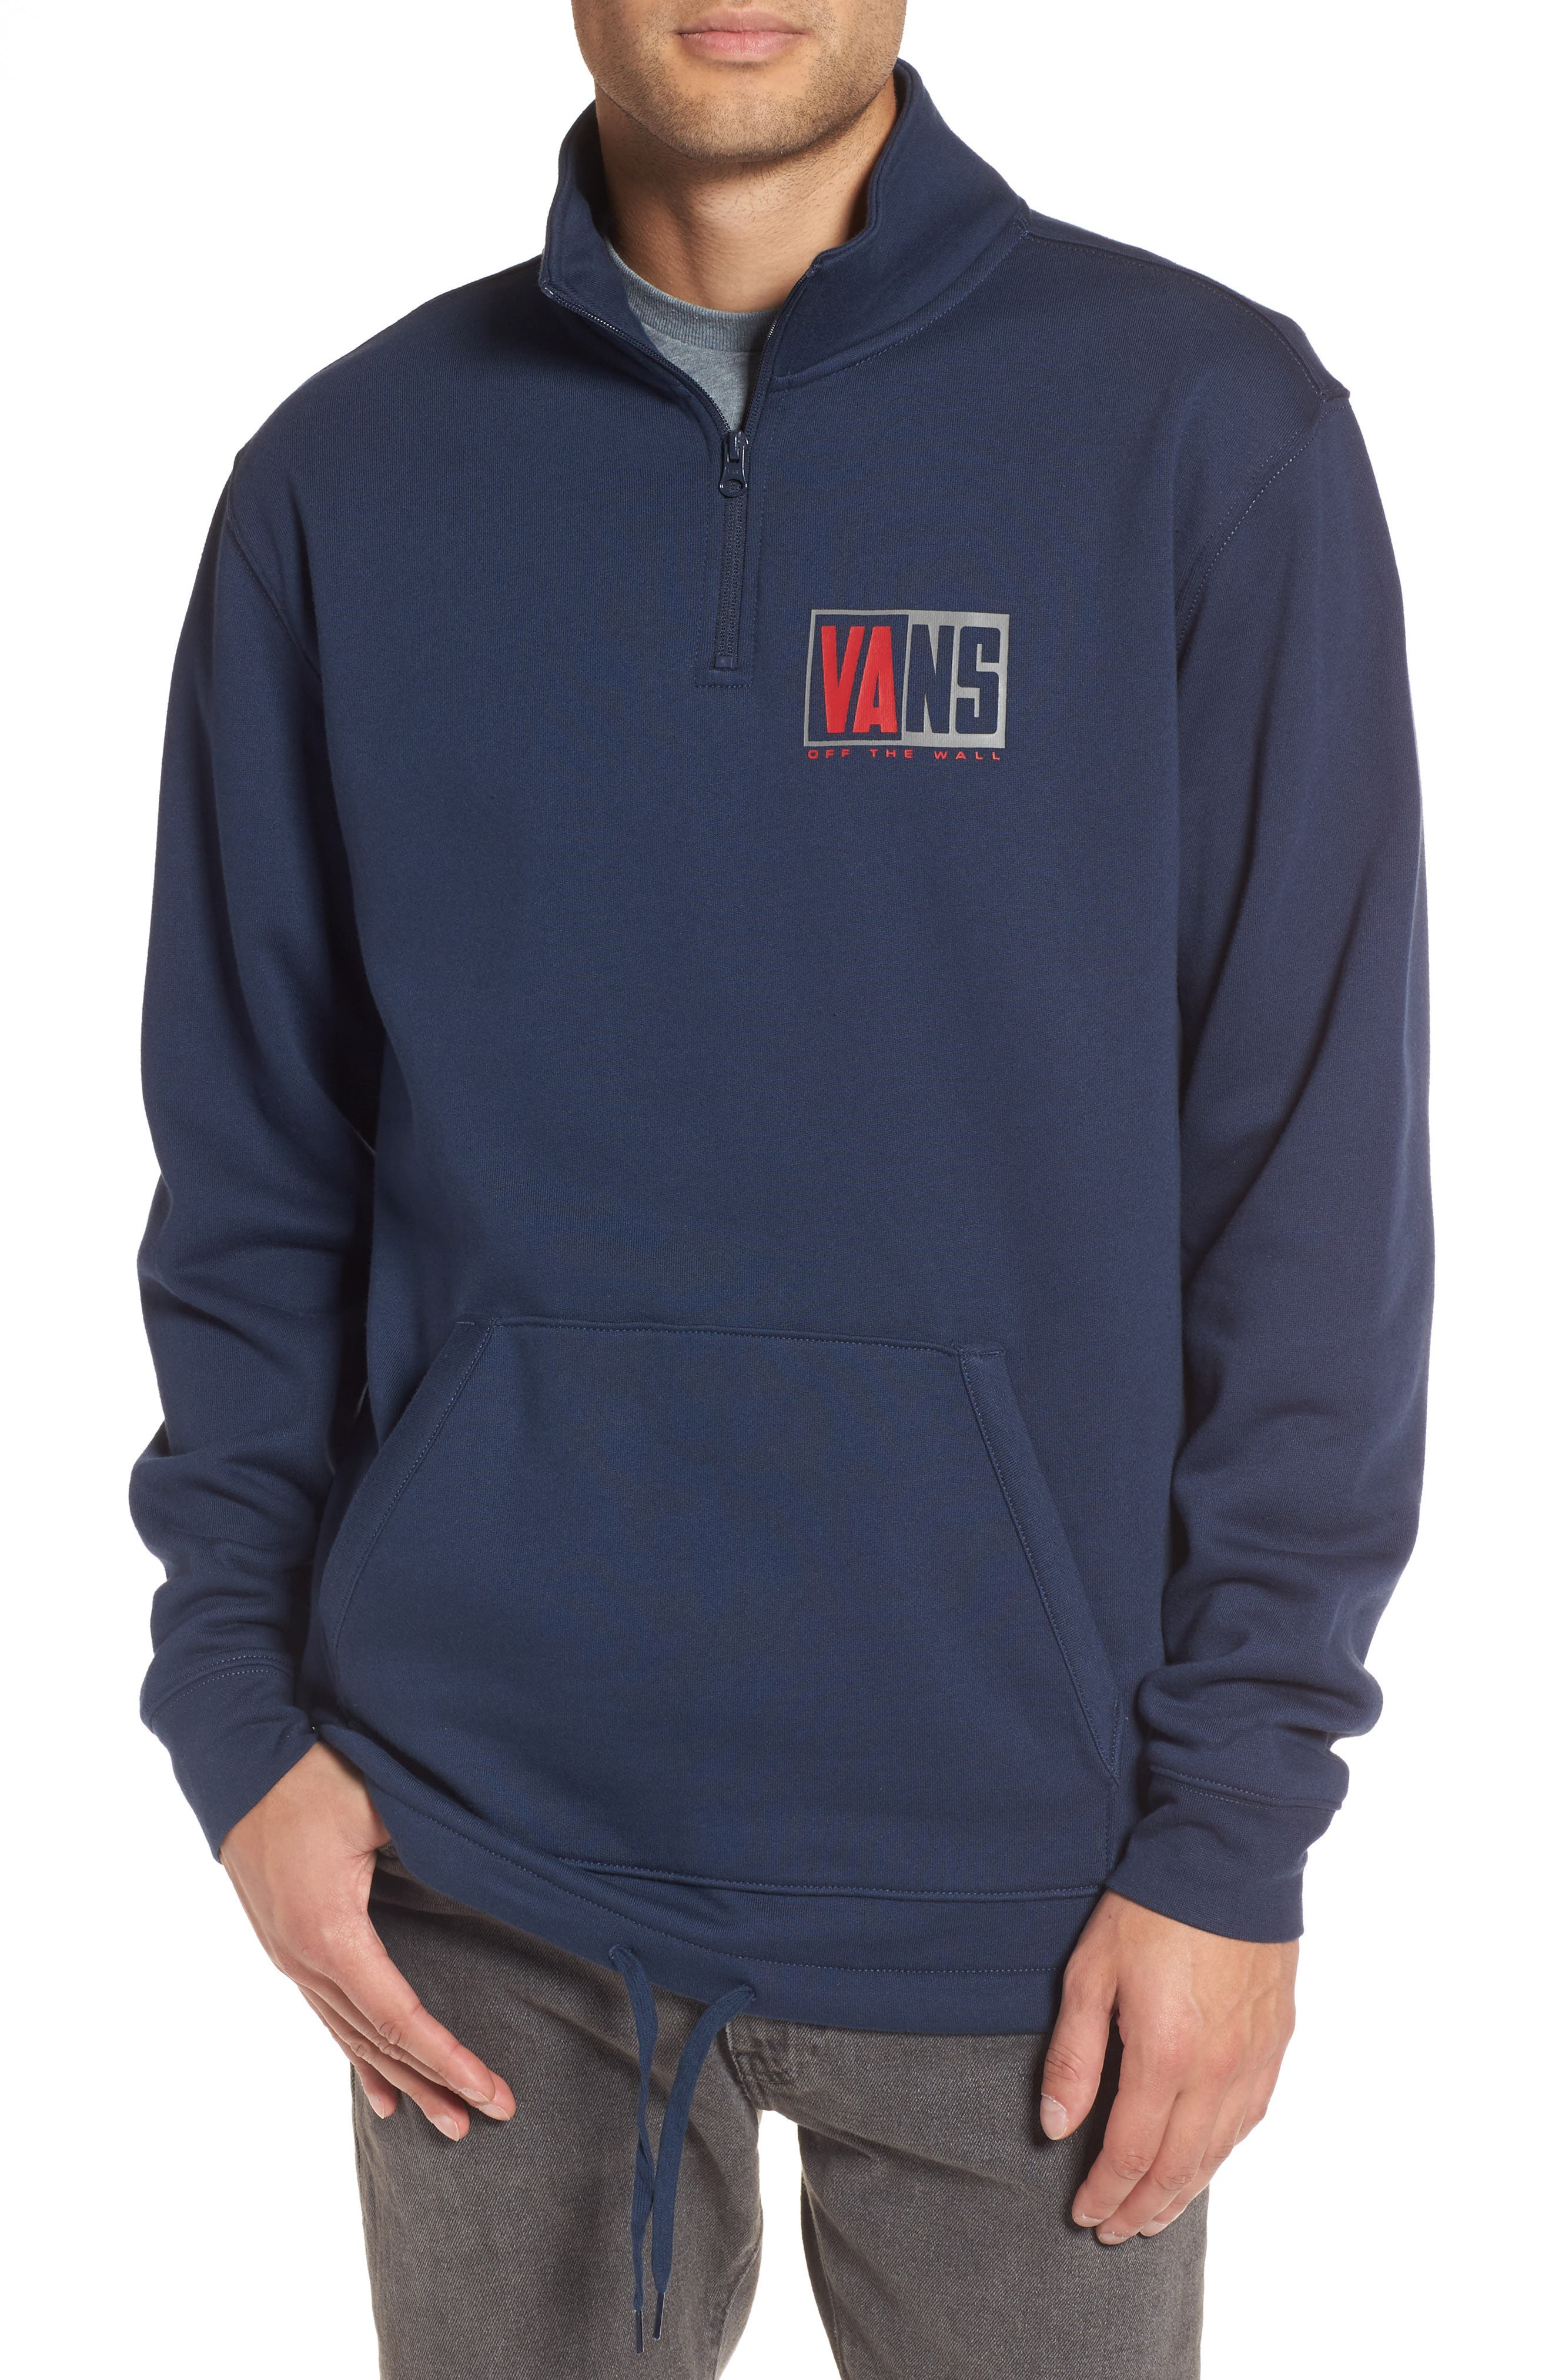 Alternate Image 1 Selected - Vans Fifty Fifty Half Zip Pullover